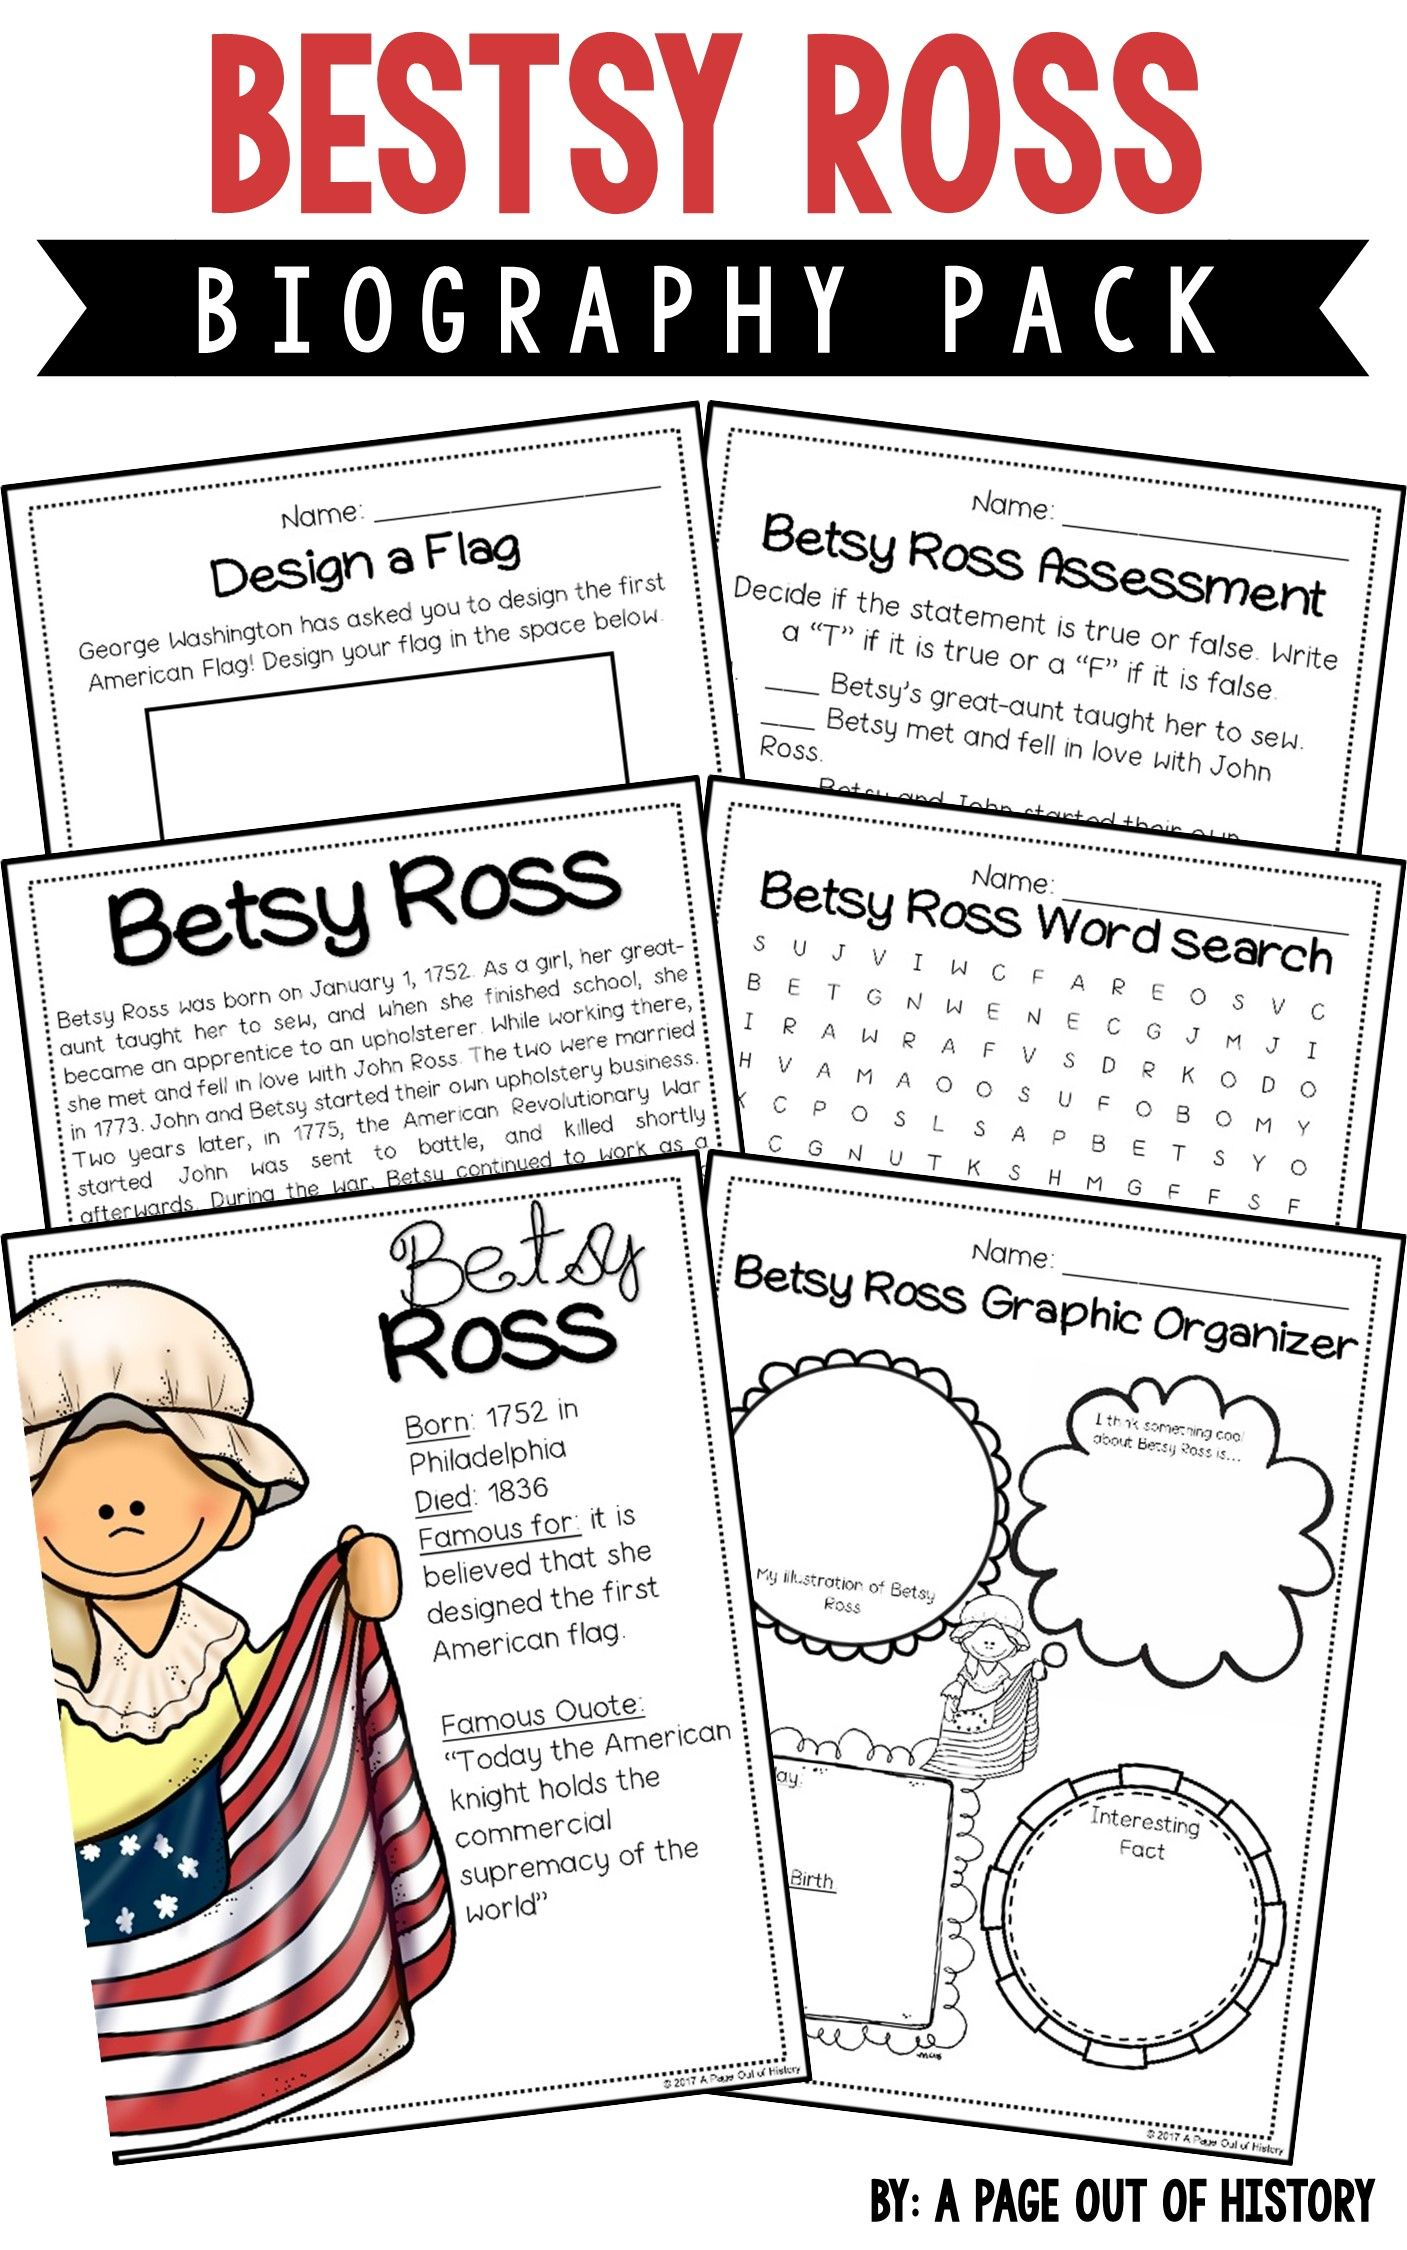 Betsy Ross Biography Pack